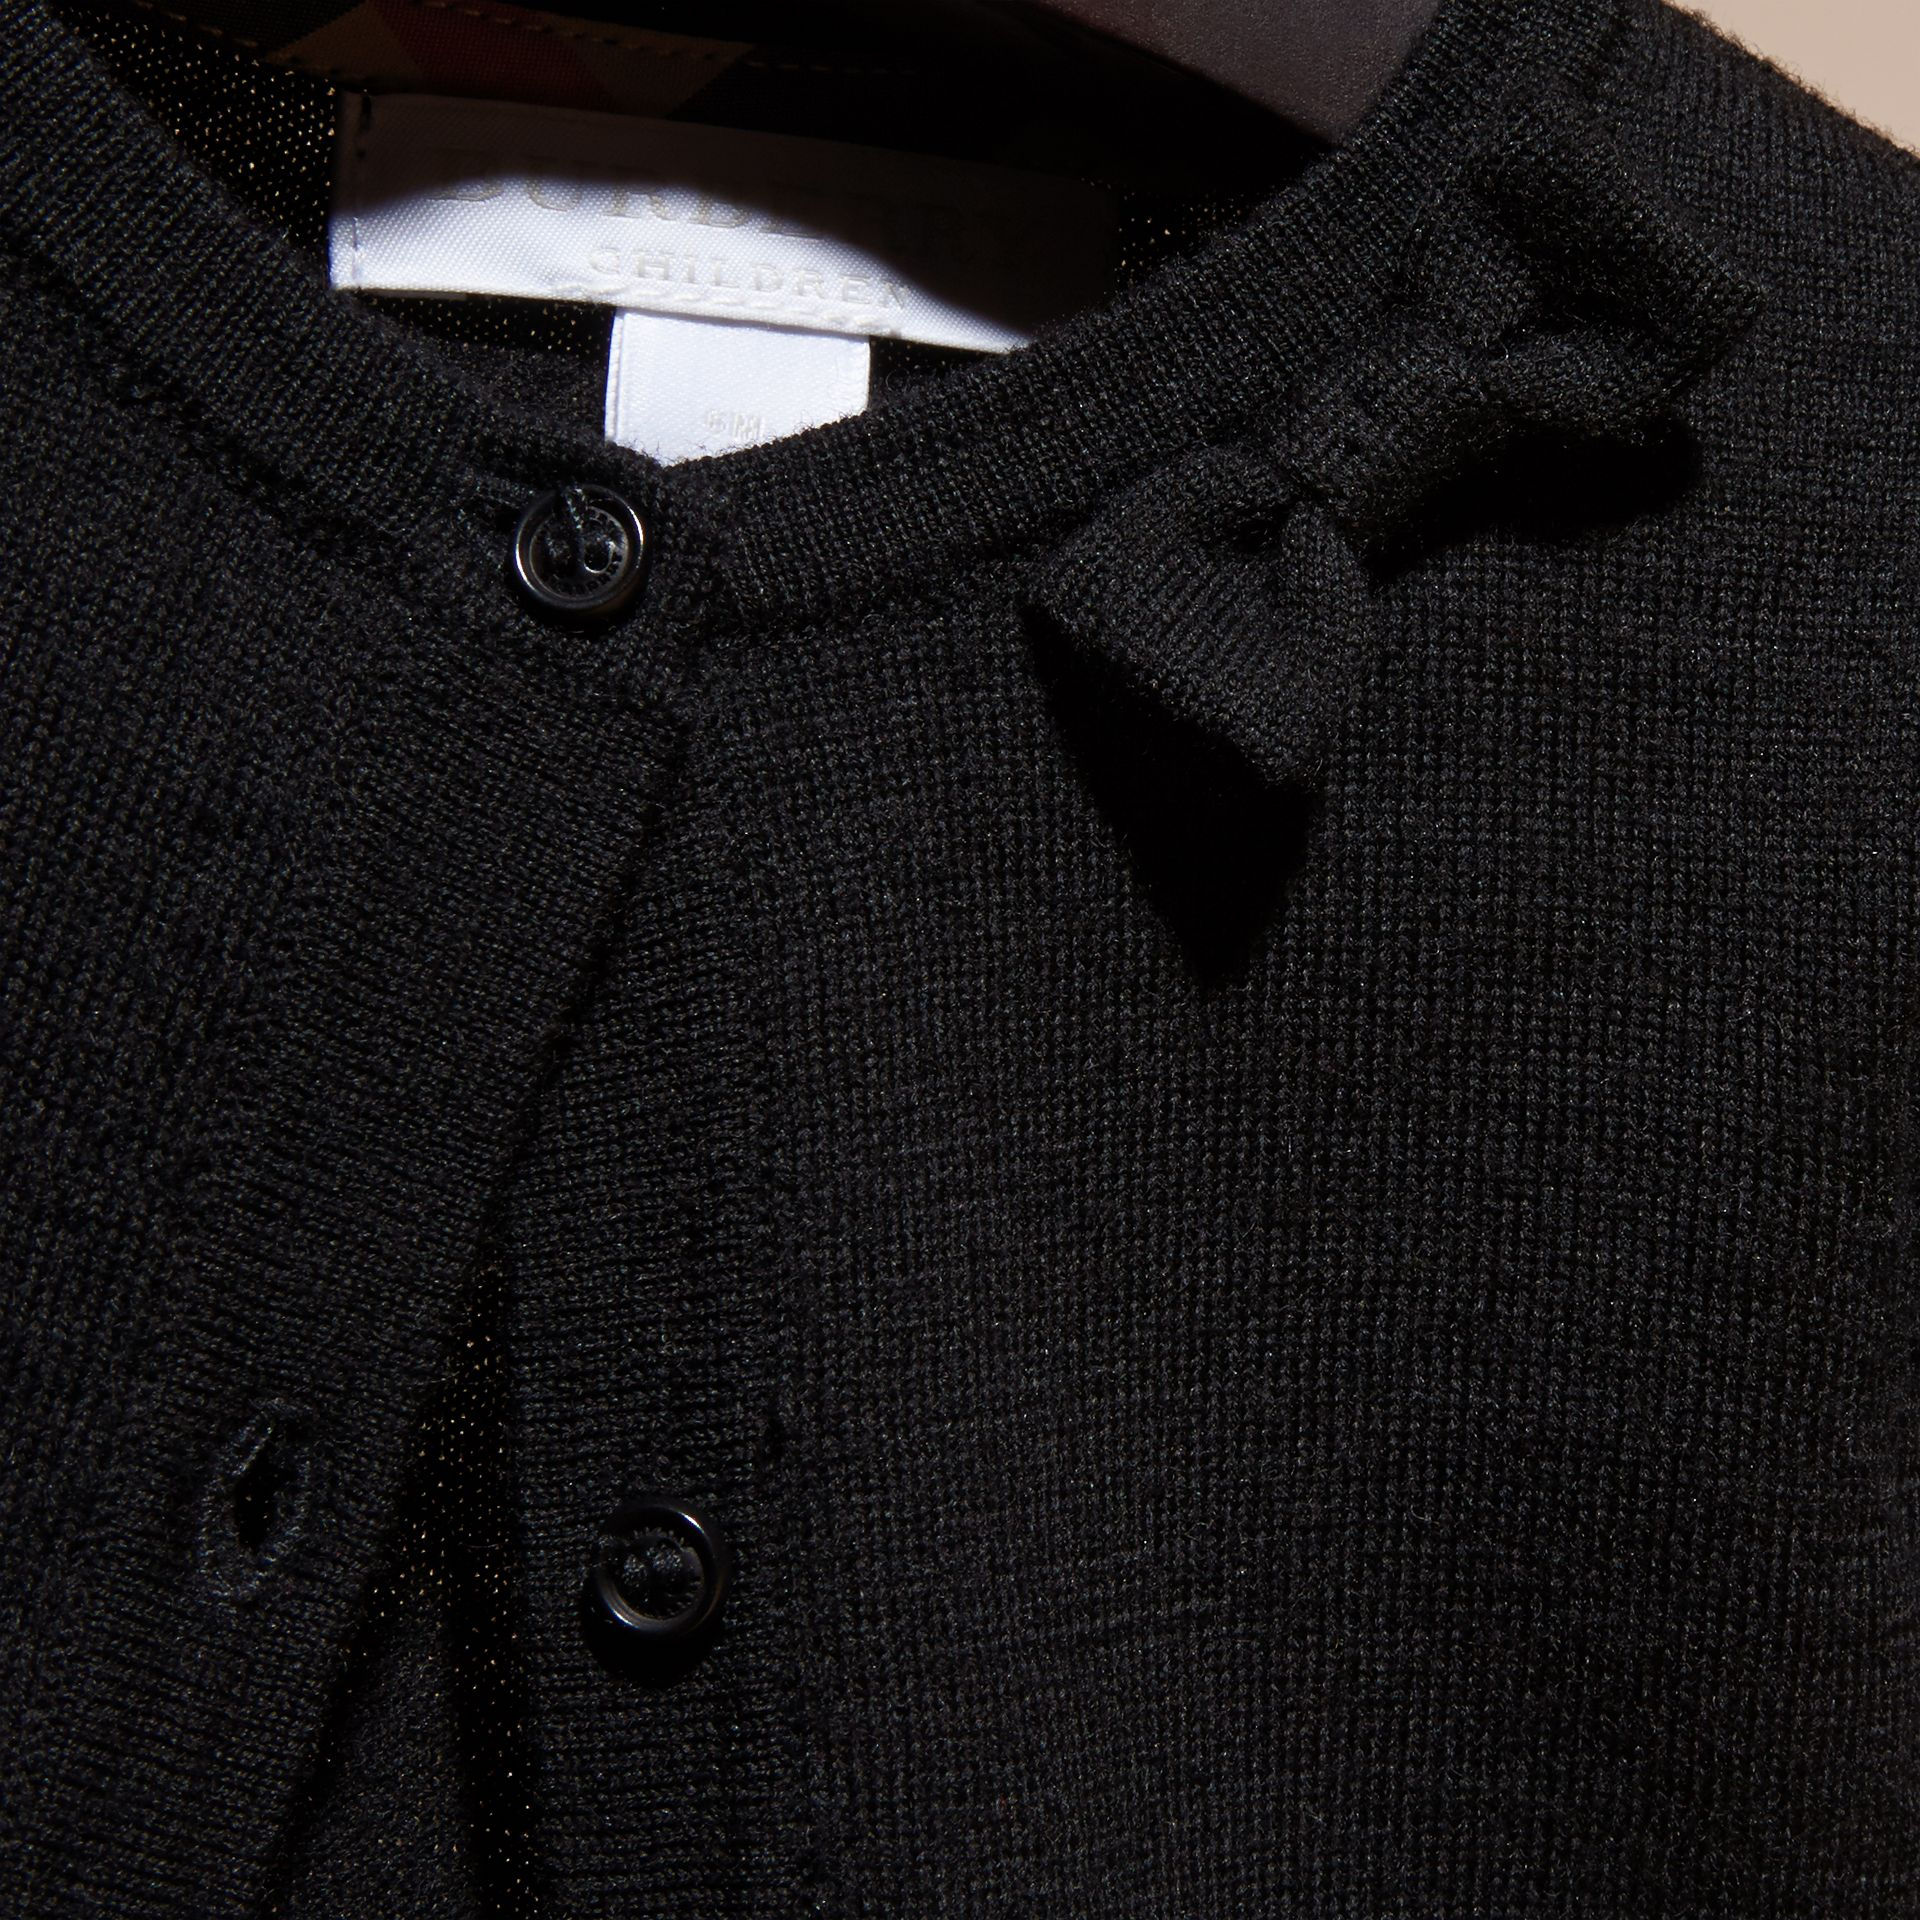 Black Lightweight Merino Wool Cardigan Black - gallery image 2